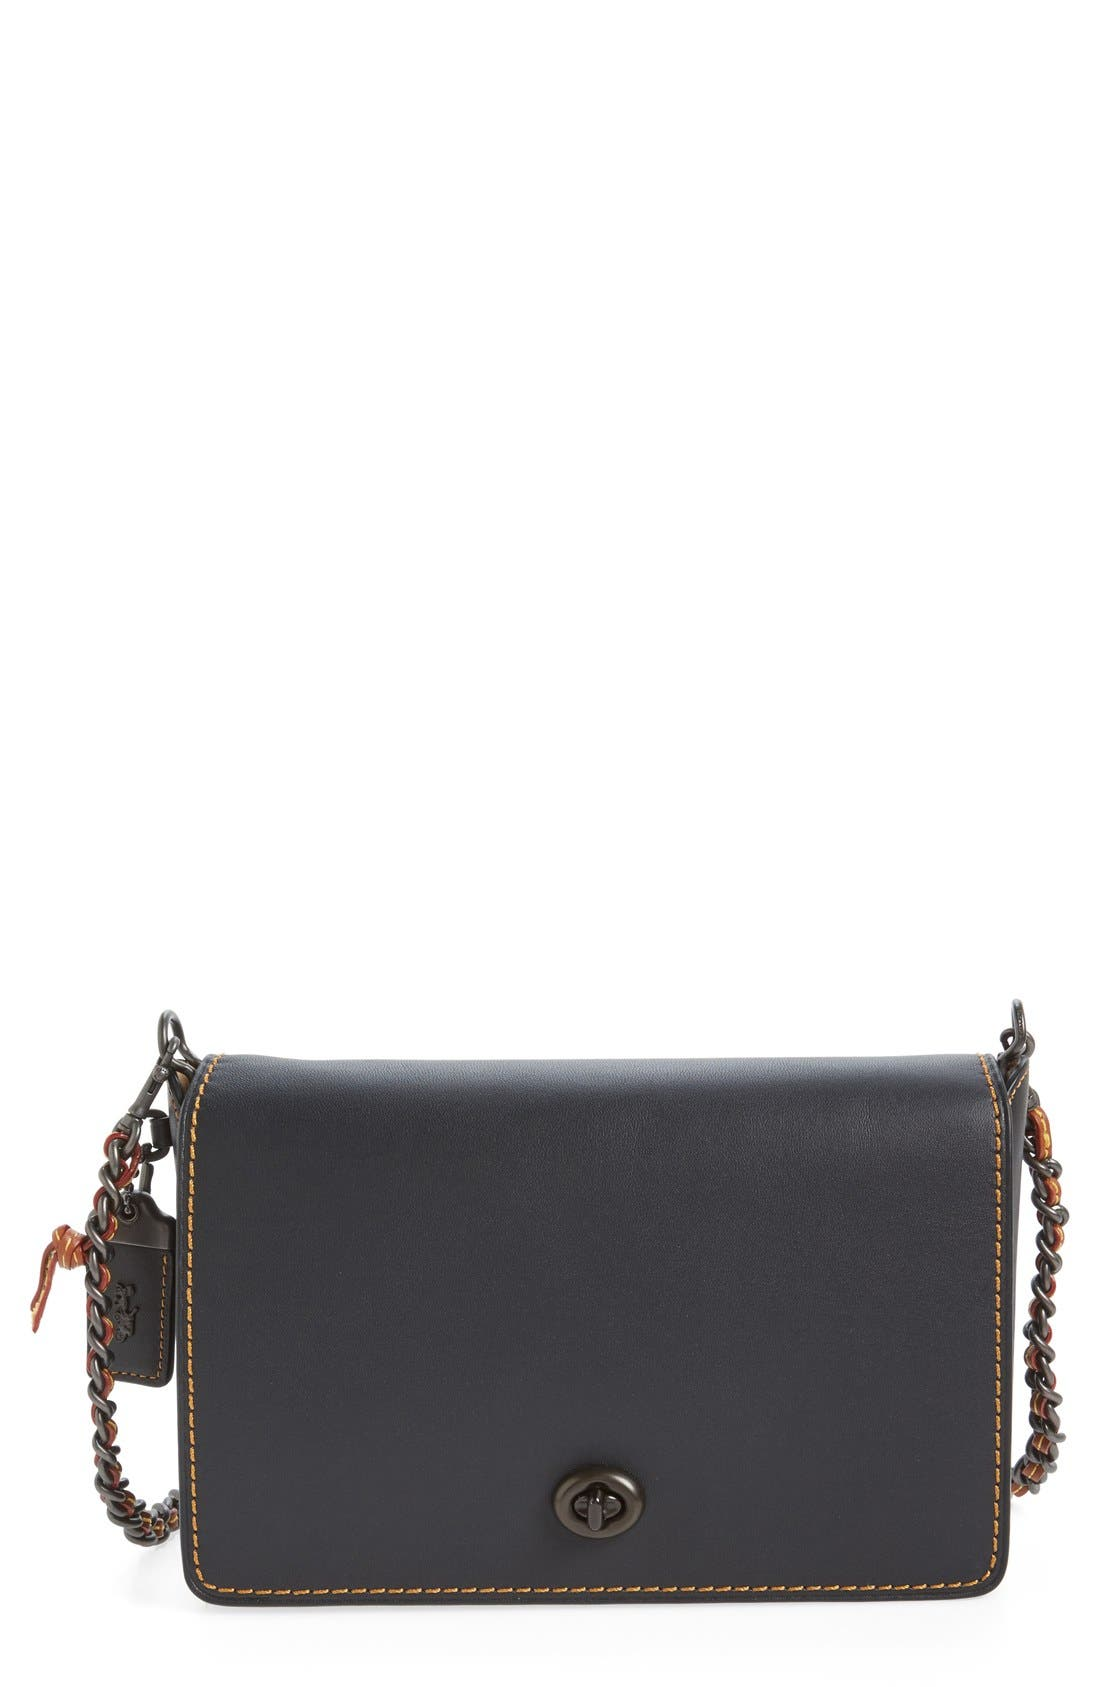 COACH 1941 'Dinky 24' Leather Crossbody Bag